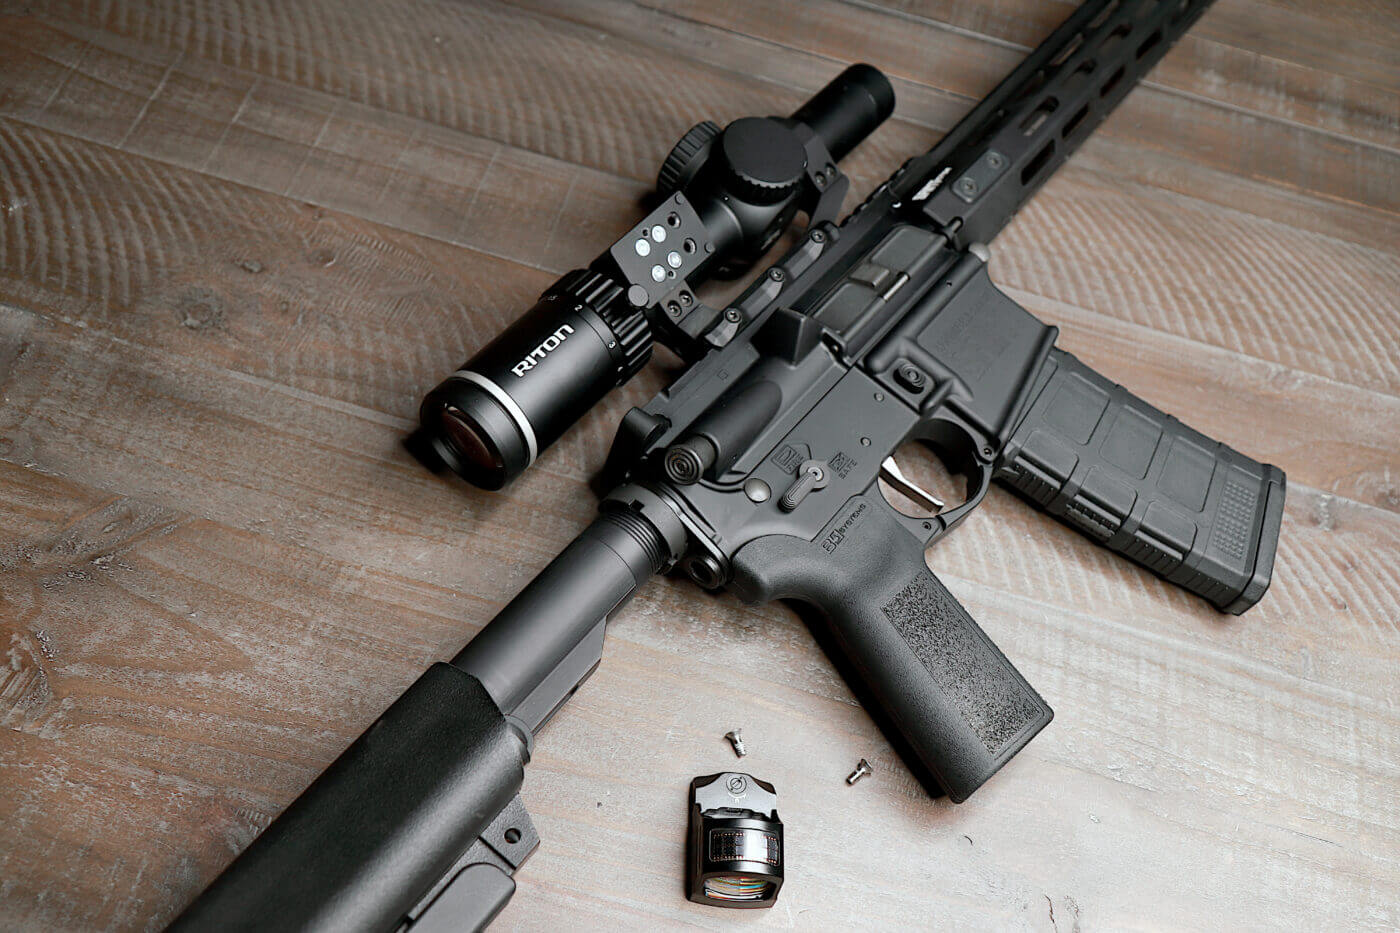 Using the Valhalla Tactical Hanger Mount